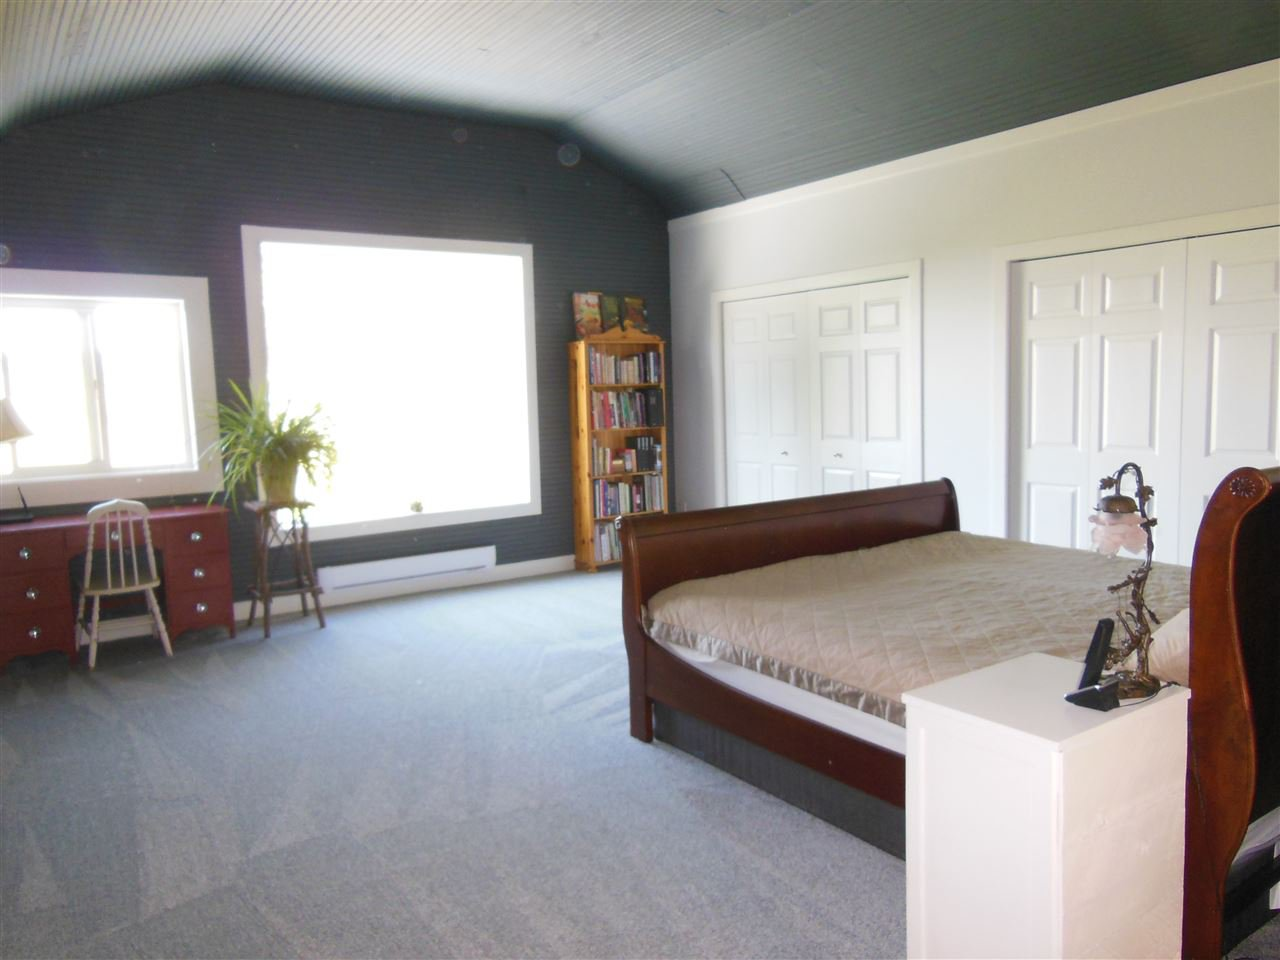 Photo 10: Photos: 3535 WESTWICK PIT Road: 150 Mile House House for sale (Williams Lake (Zone 27))  : MLS®# R2488772